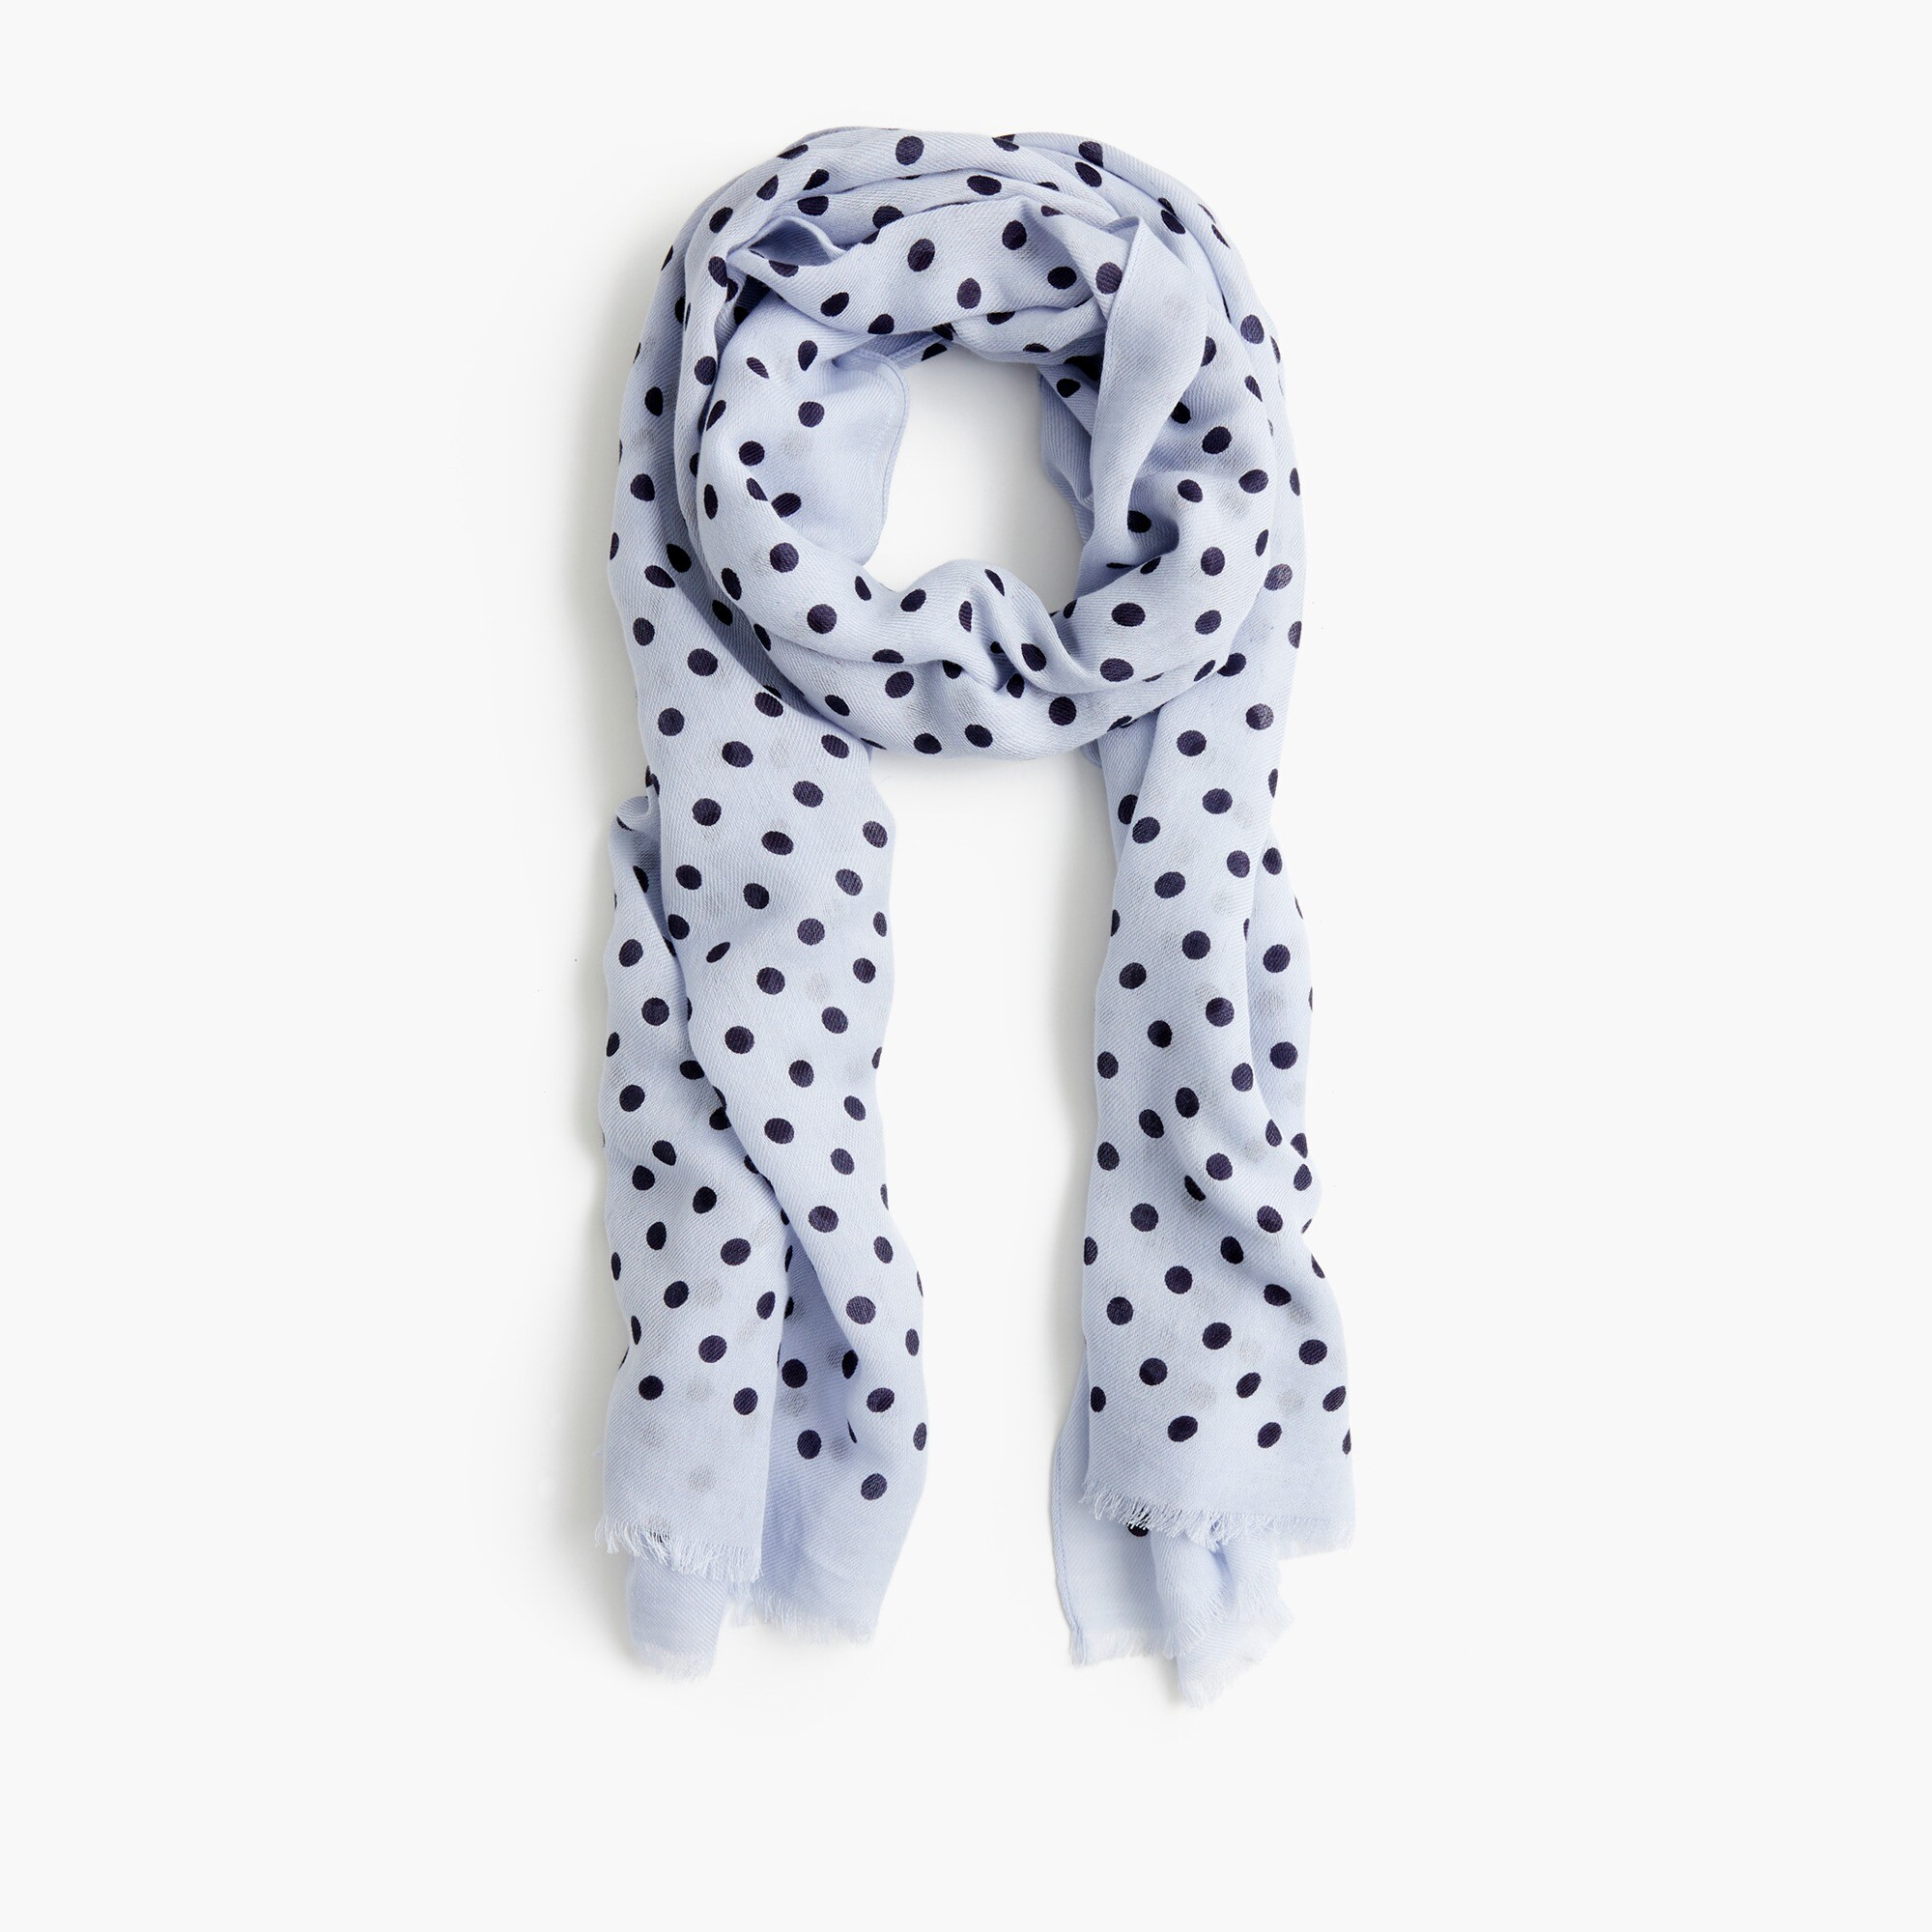 Image 3 for Polka-dot midseason scarf